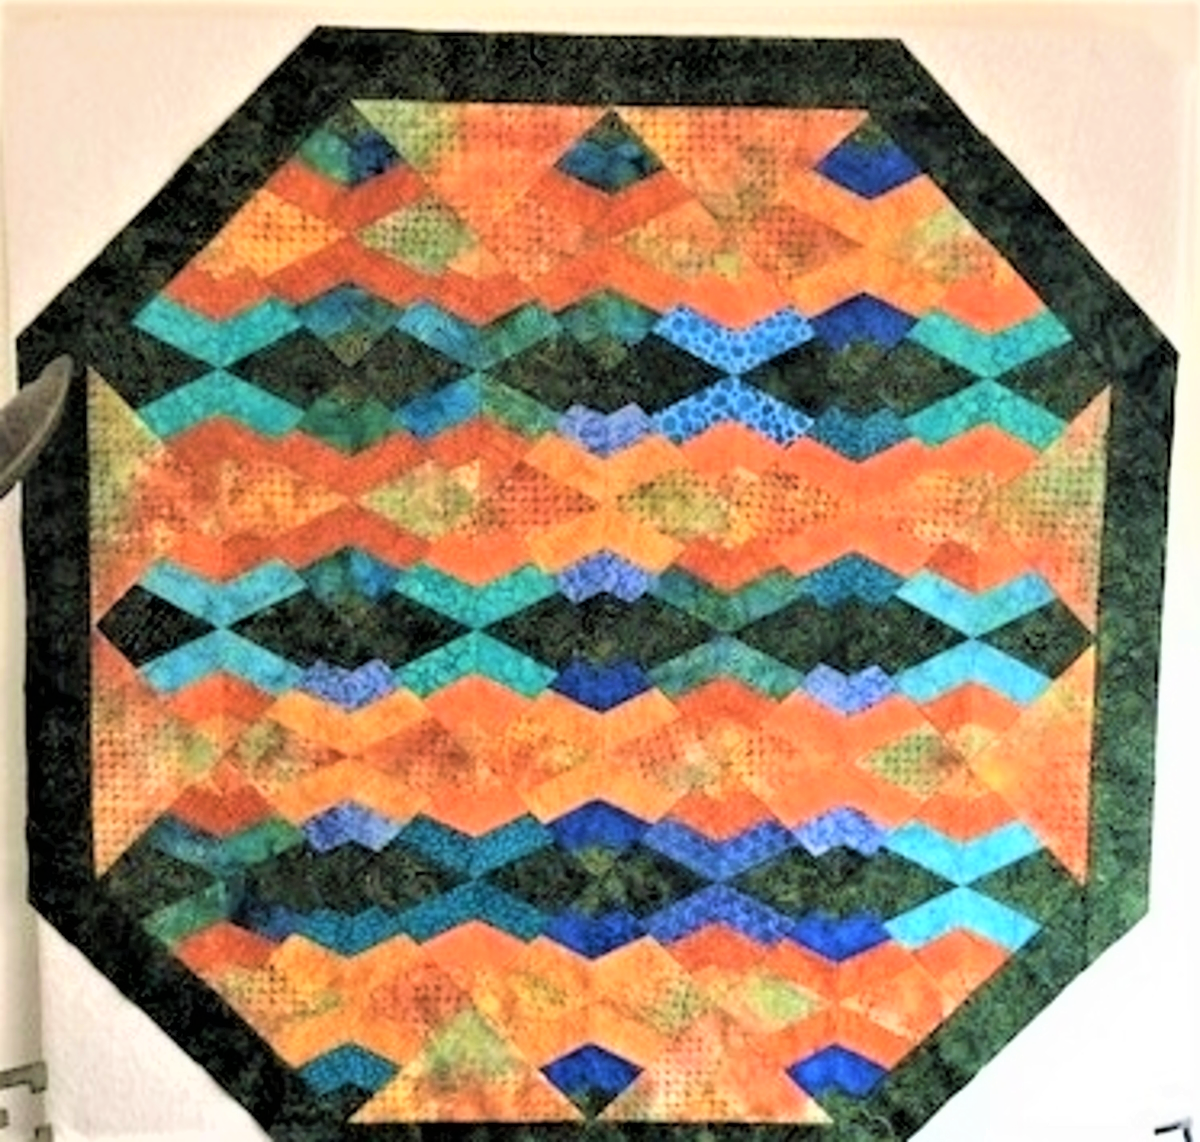 spider web quilt inside border